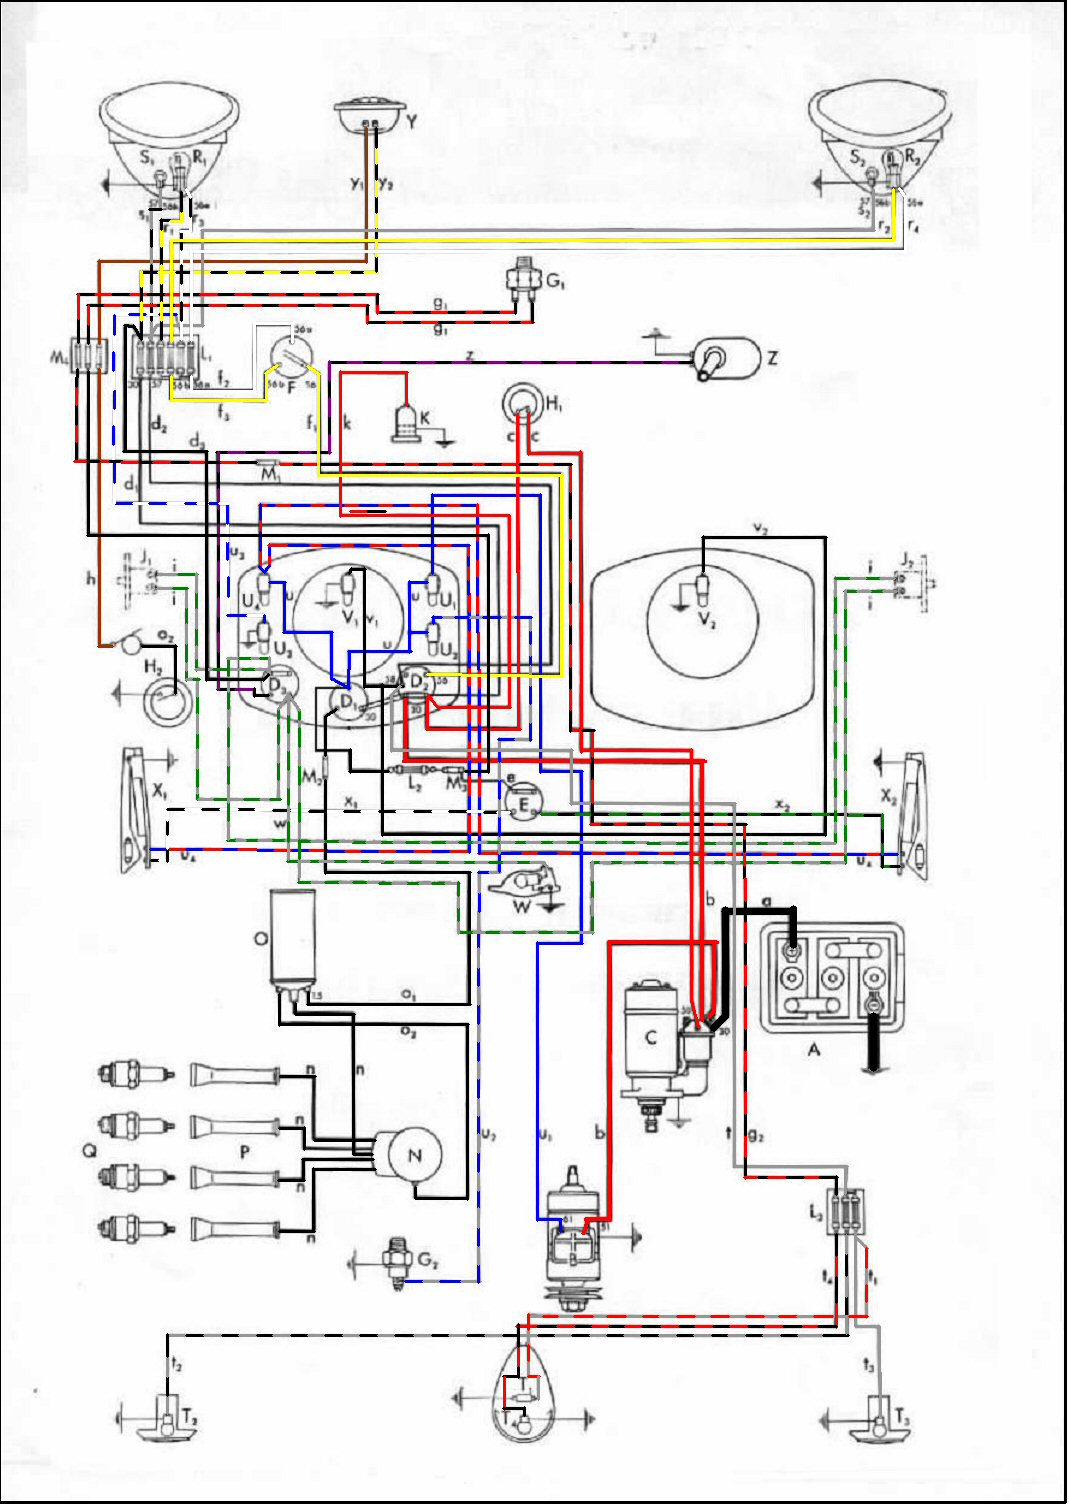 Super Beetle Wiring Diagram Private Sharing About 1974 Vw Thesamba Com Type 1 Diagrams Rh 1972 Volkswagen